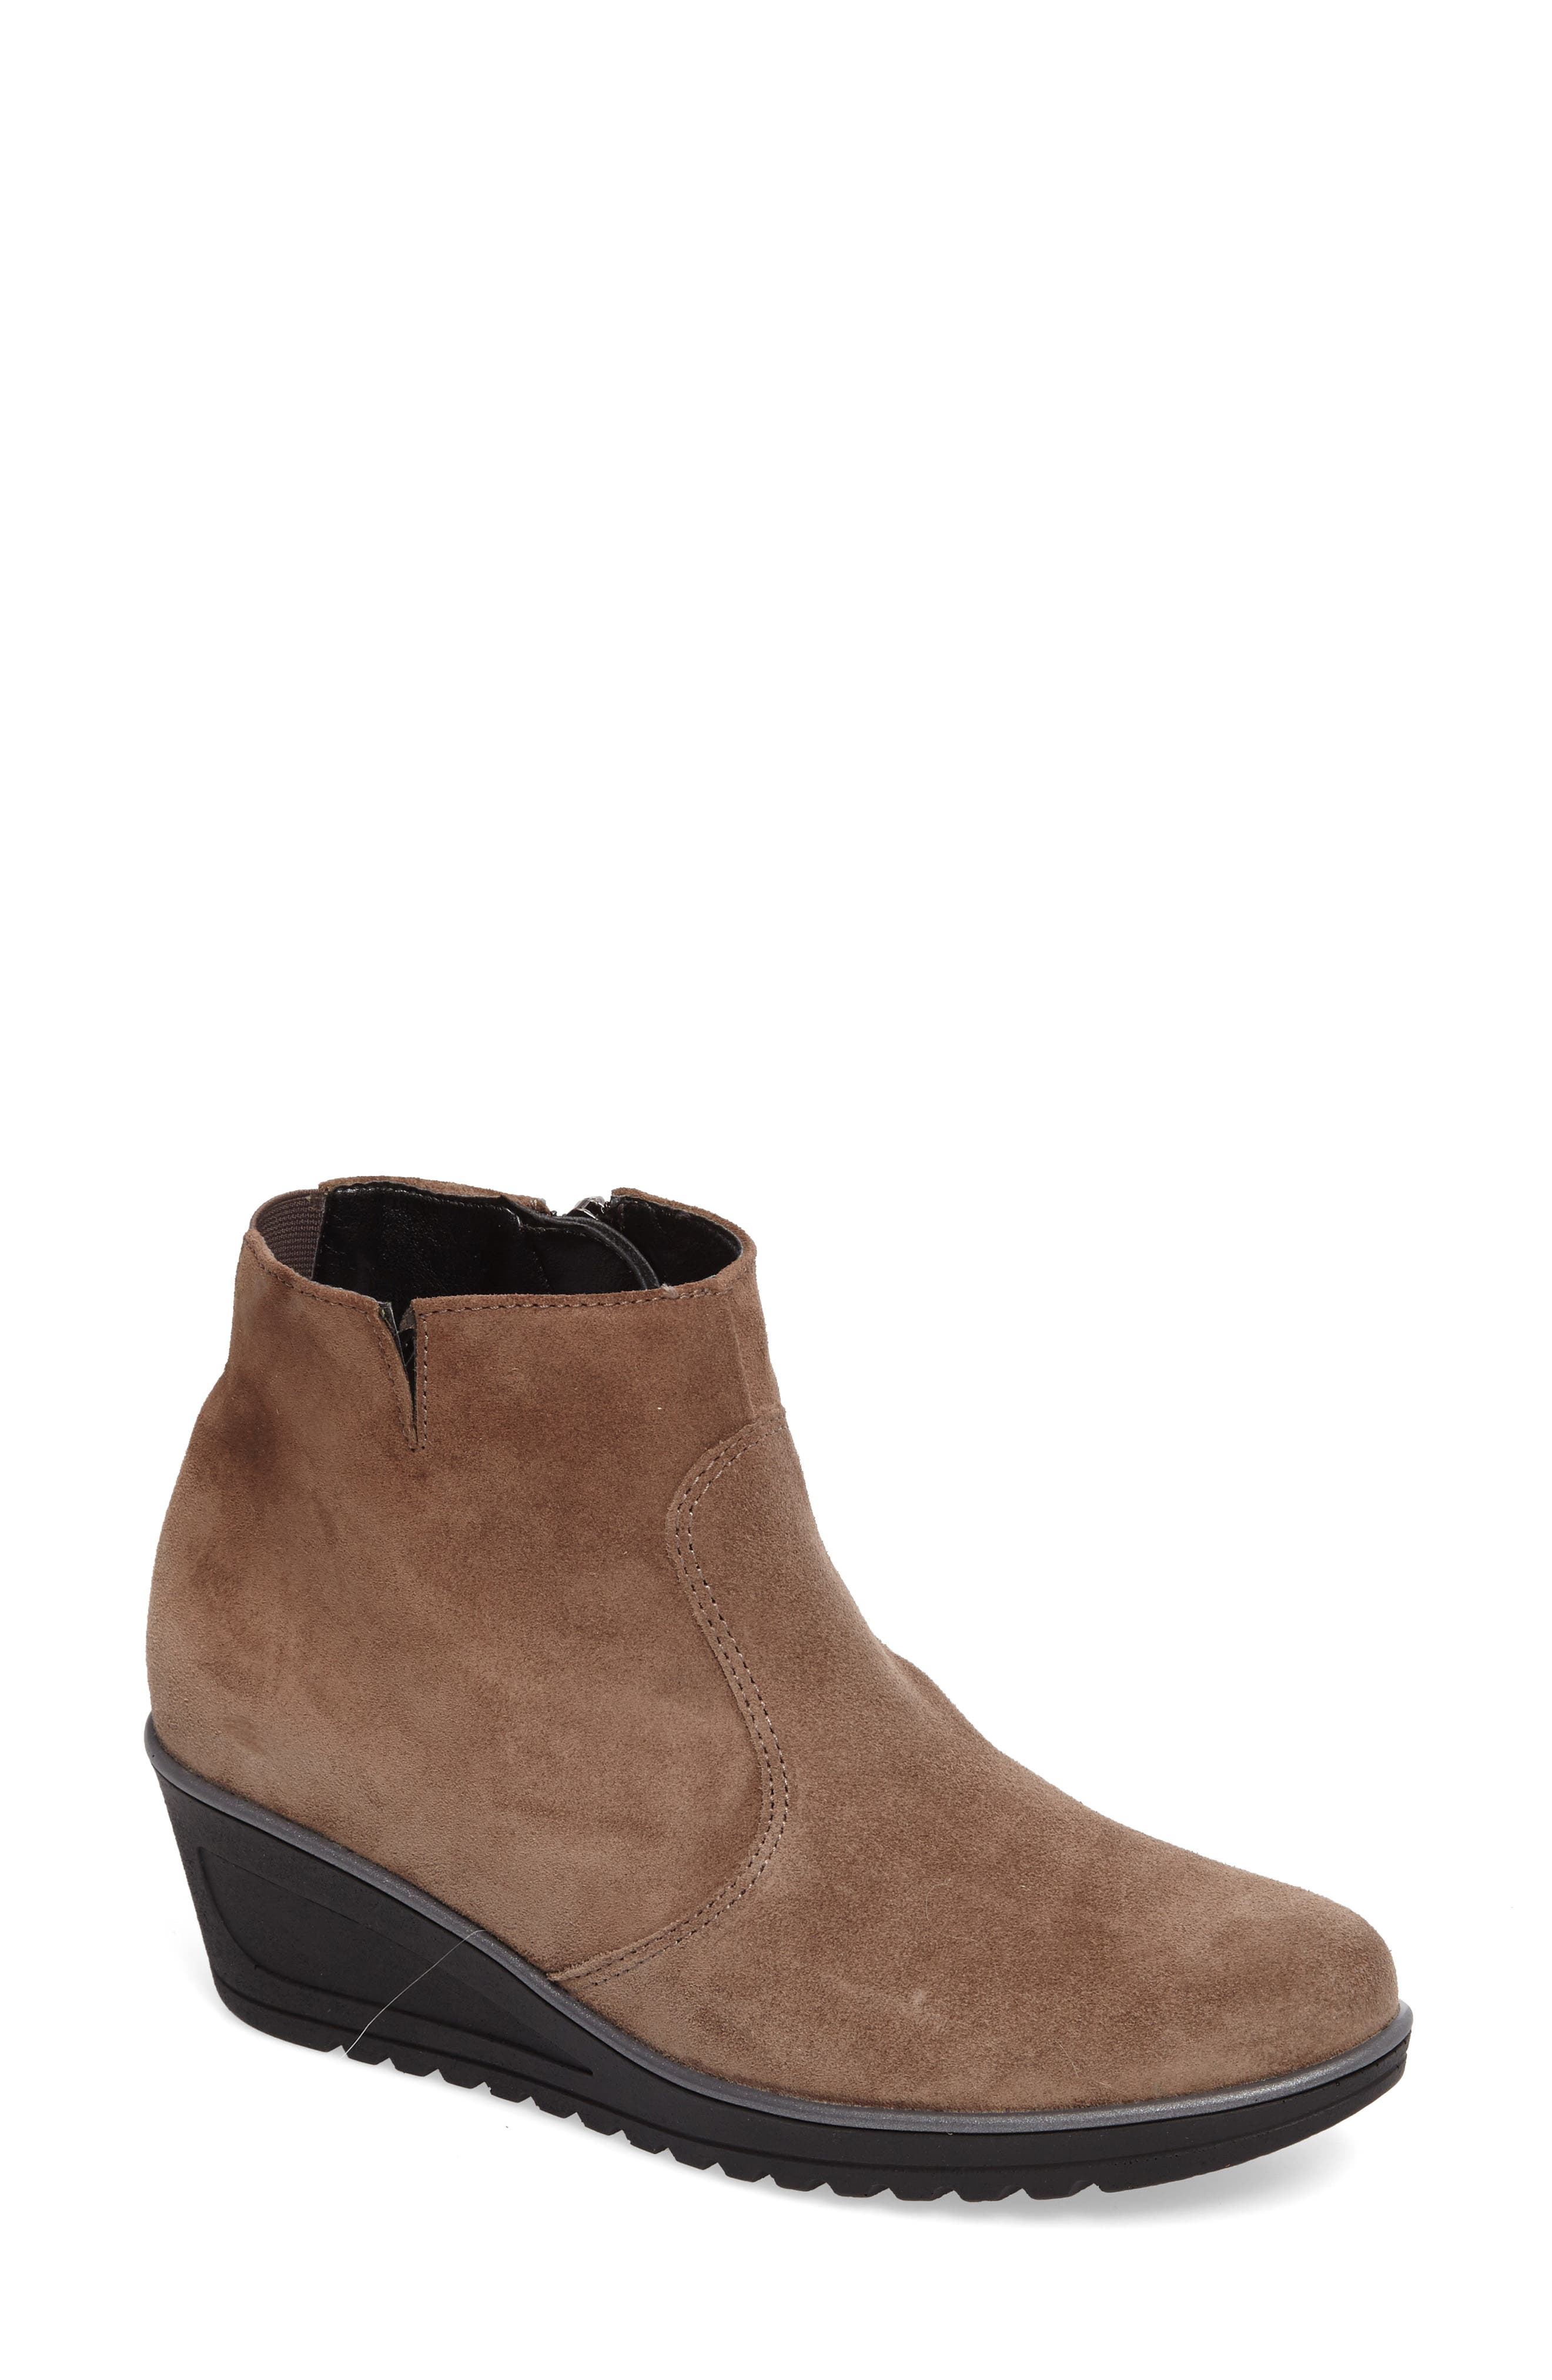 Hessa Wedge Bootie,                         Main,                         color, Teak Suede